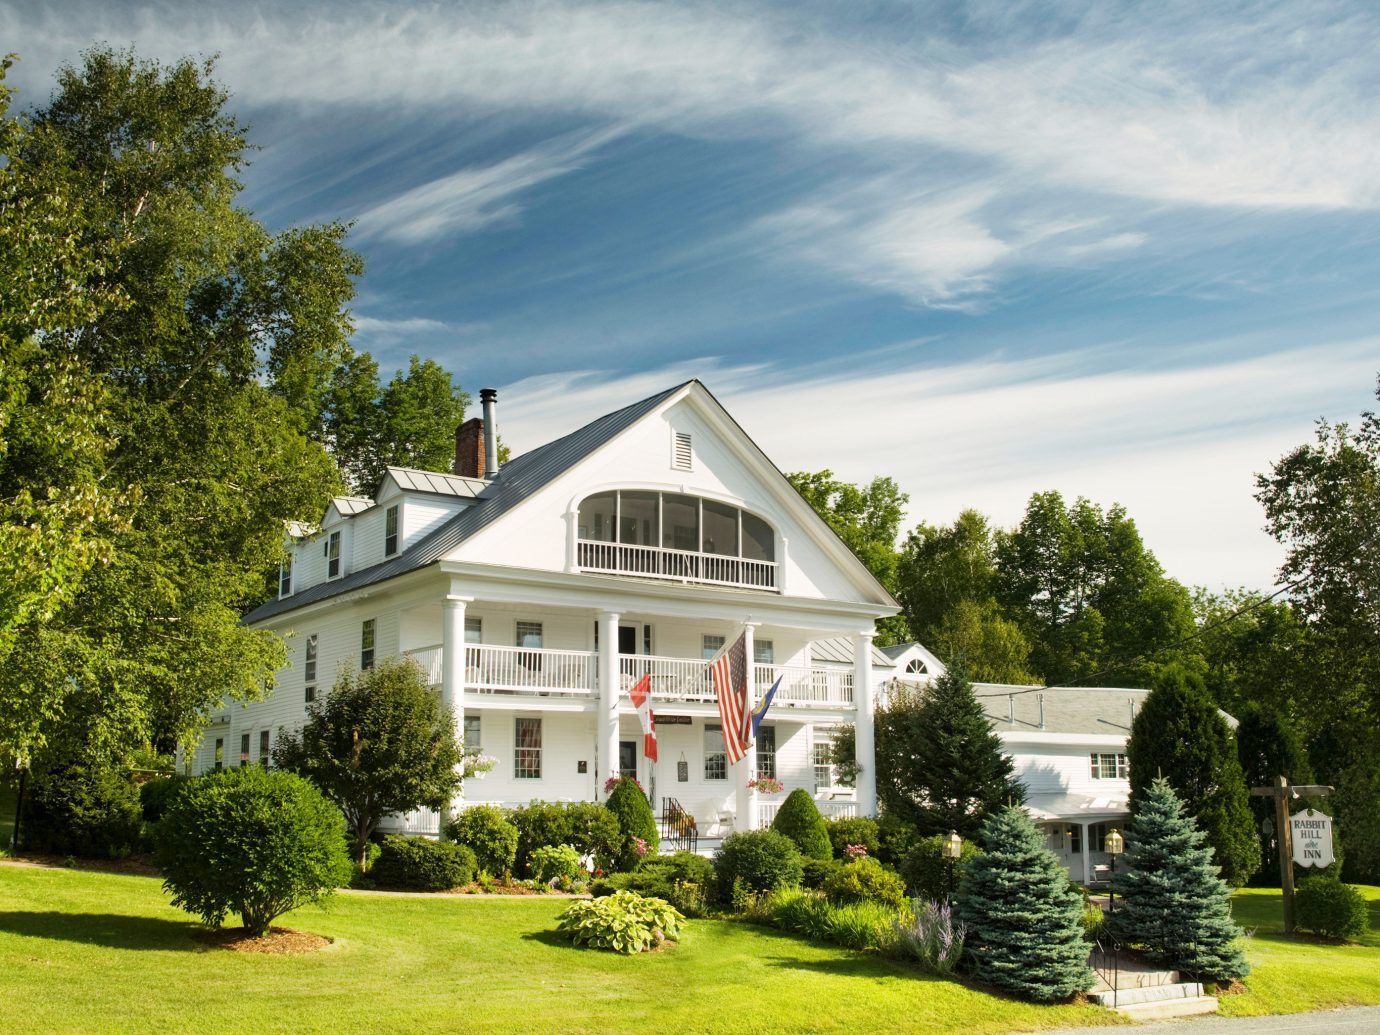 Boutique Hotels Classic Country Exterior Grounds Hotels Inn Romantic Getaways Romantic Hotels Trip Ideas tree outdoor grass house home property estate residential area building lawn suburb real estate cottage mansion Garden farmhouse manor house plant residential lush